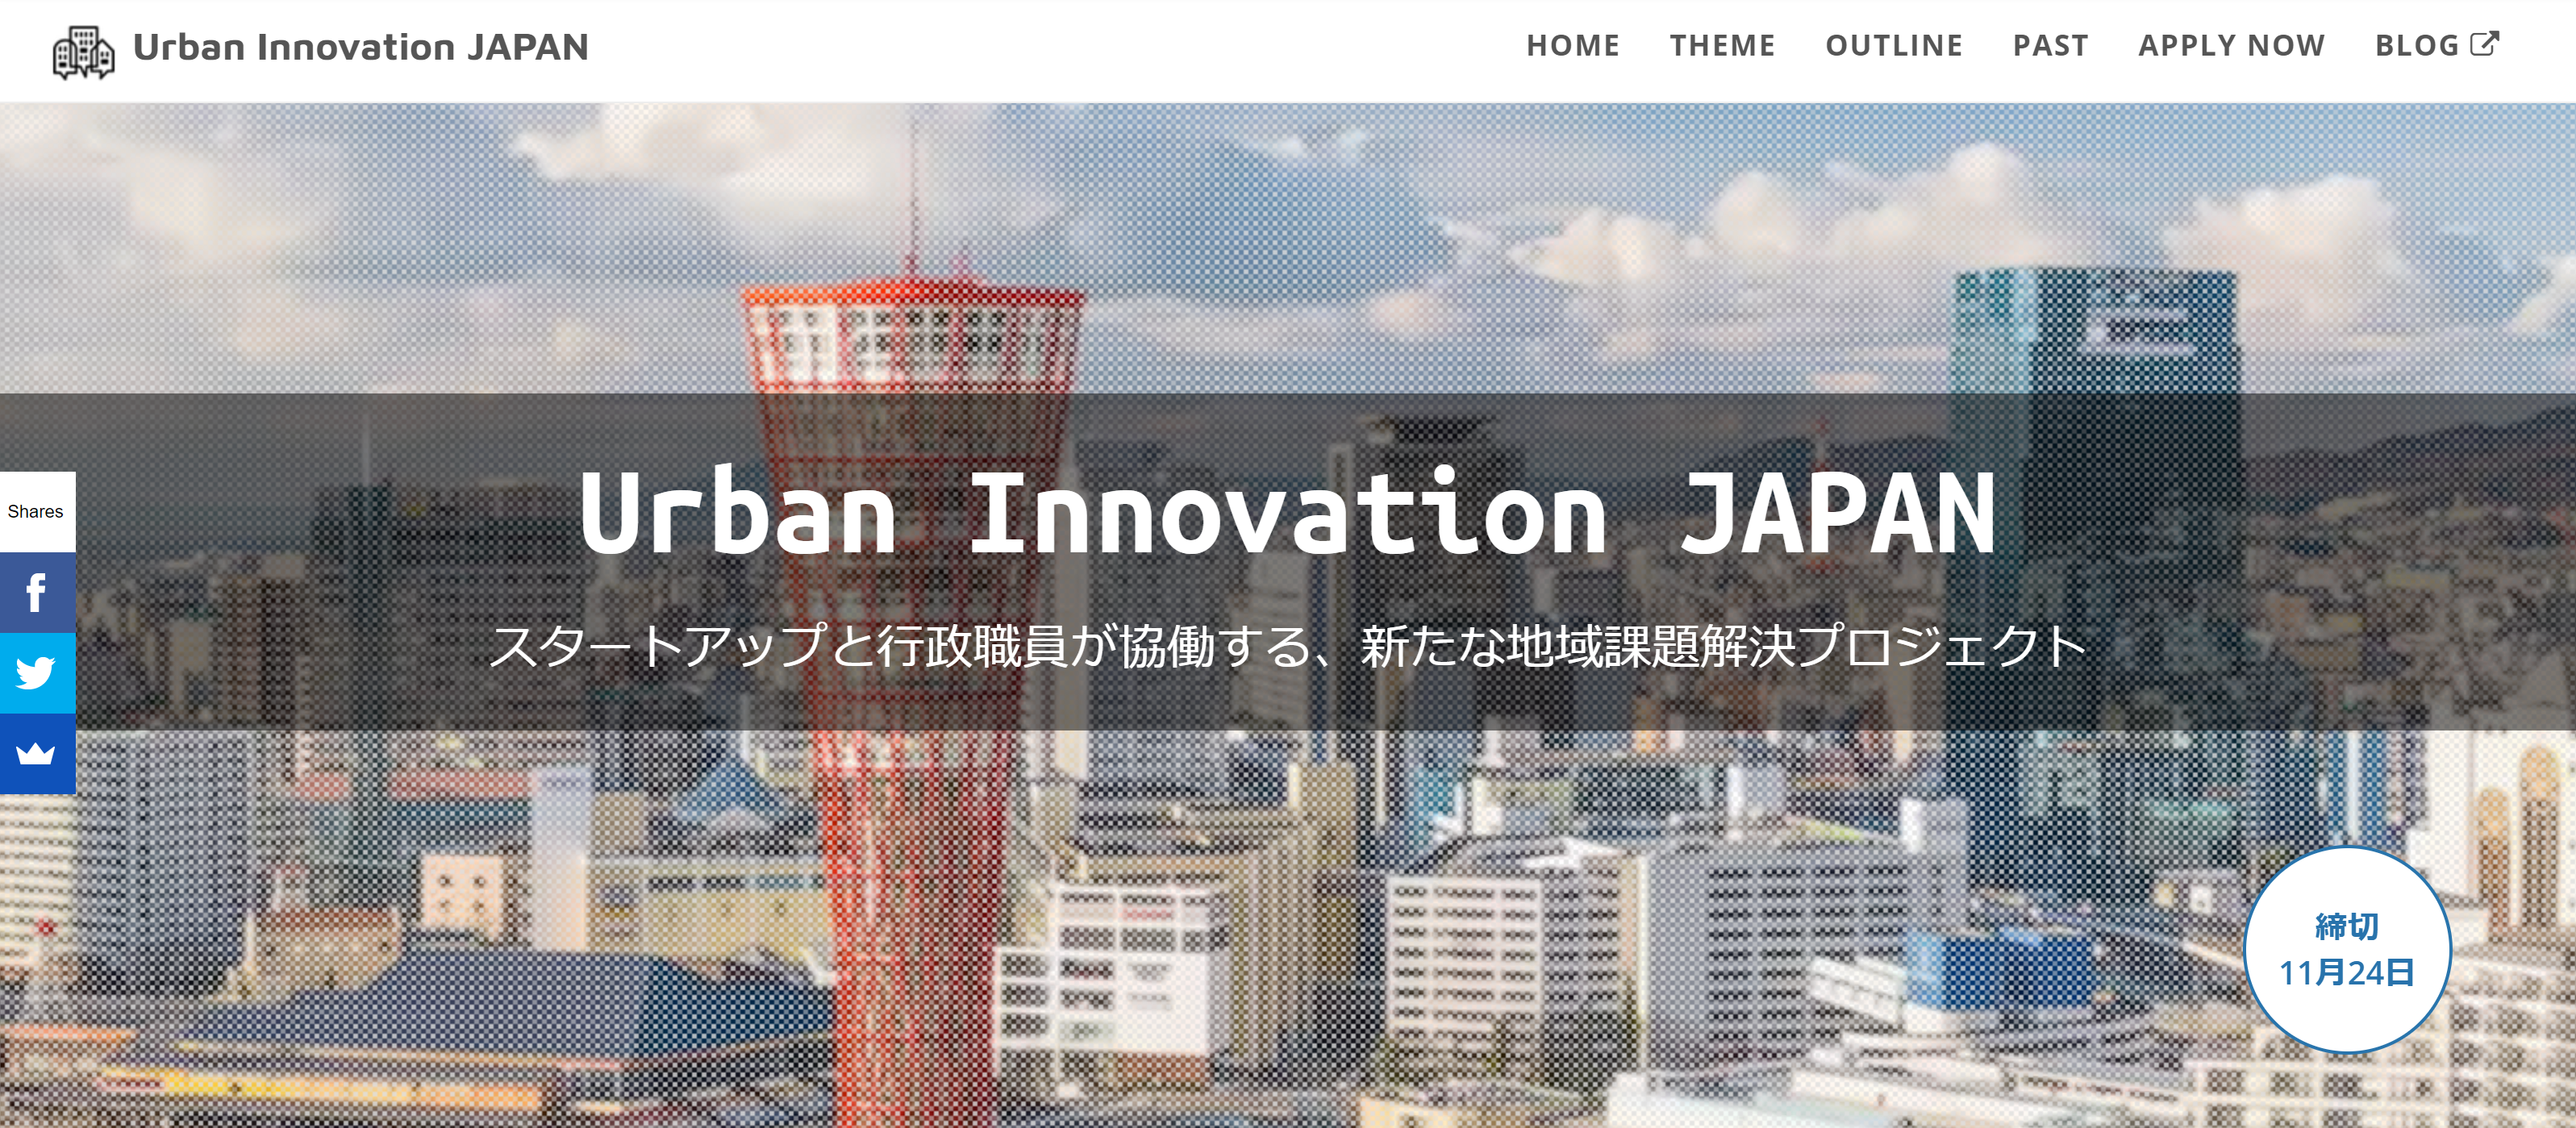 Urban Innovation JAPAN 始動!